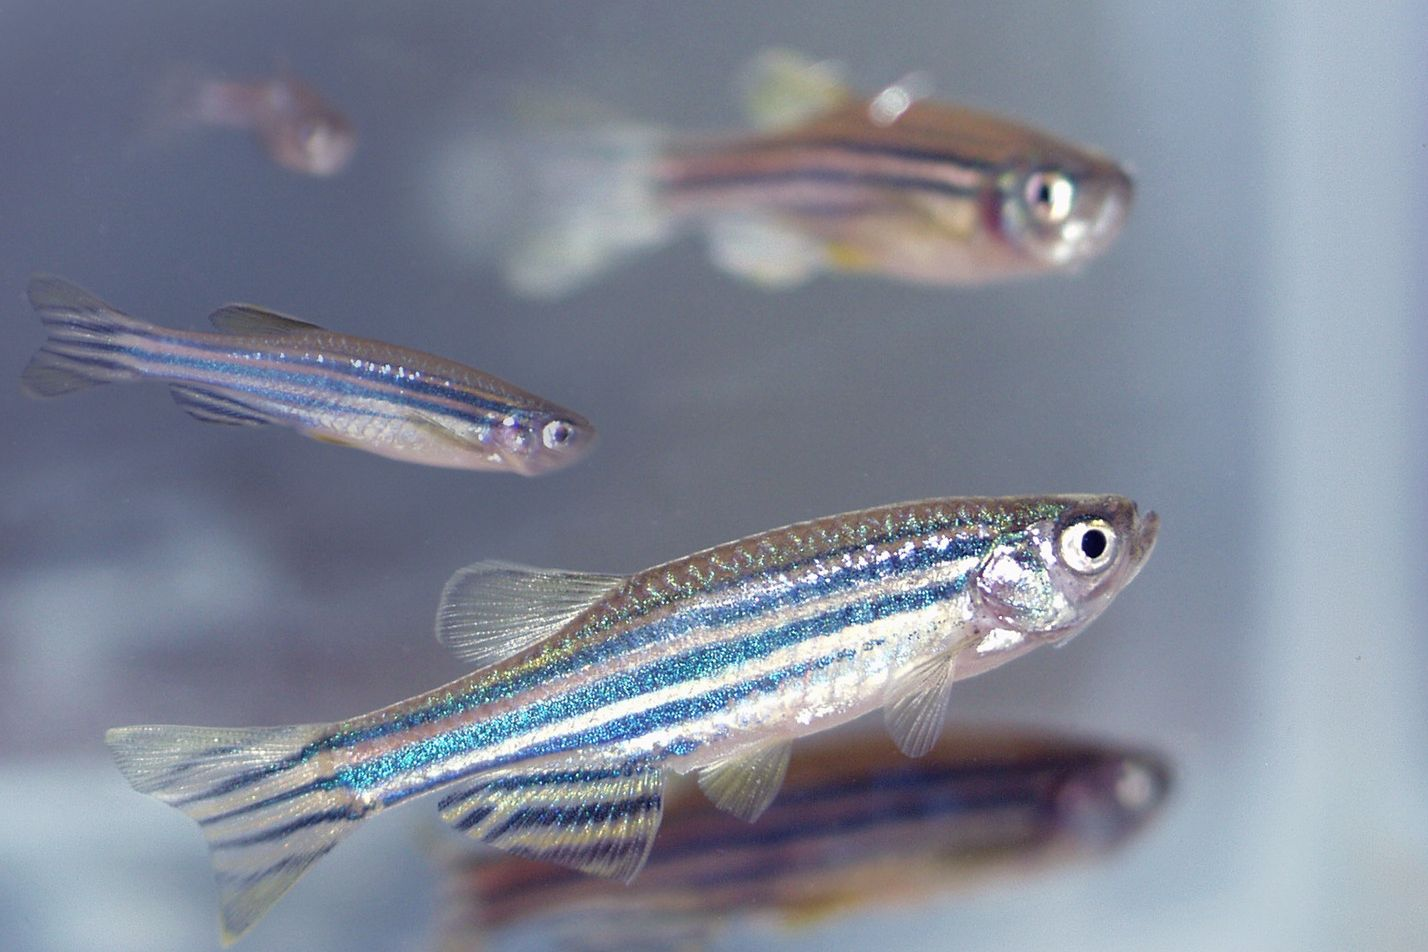 Photo of a group of blue and silver Zebra fish in a tank.